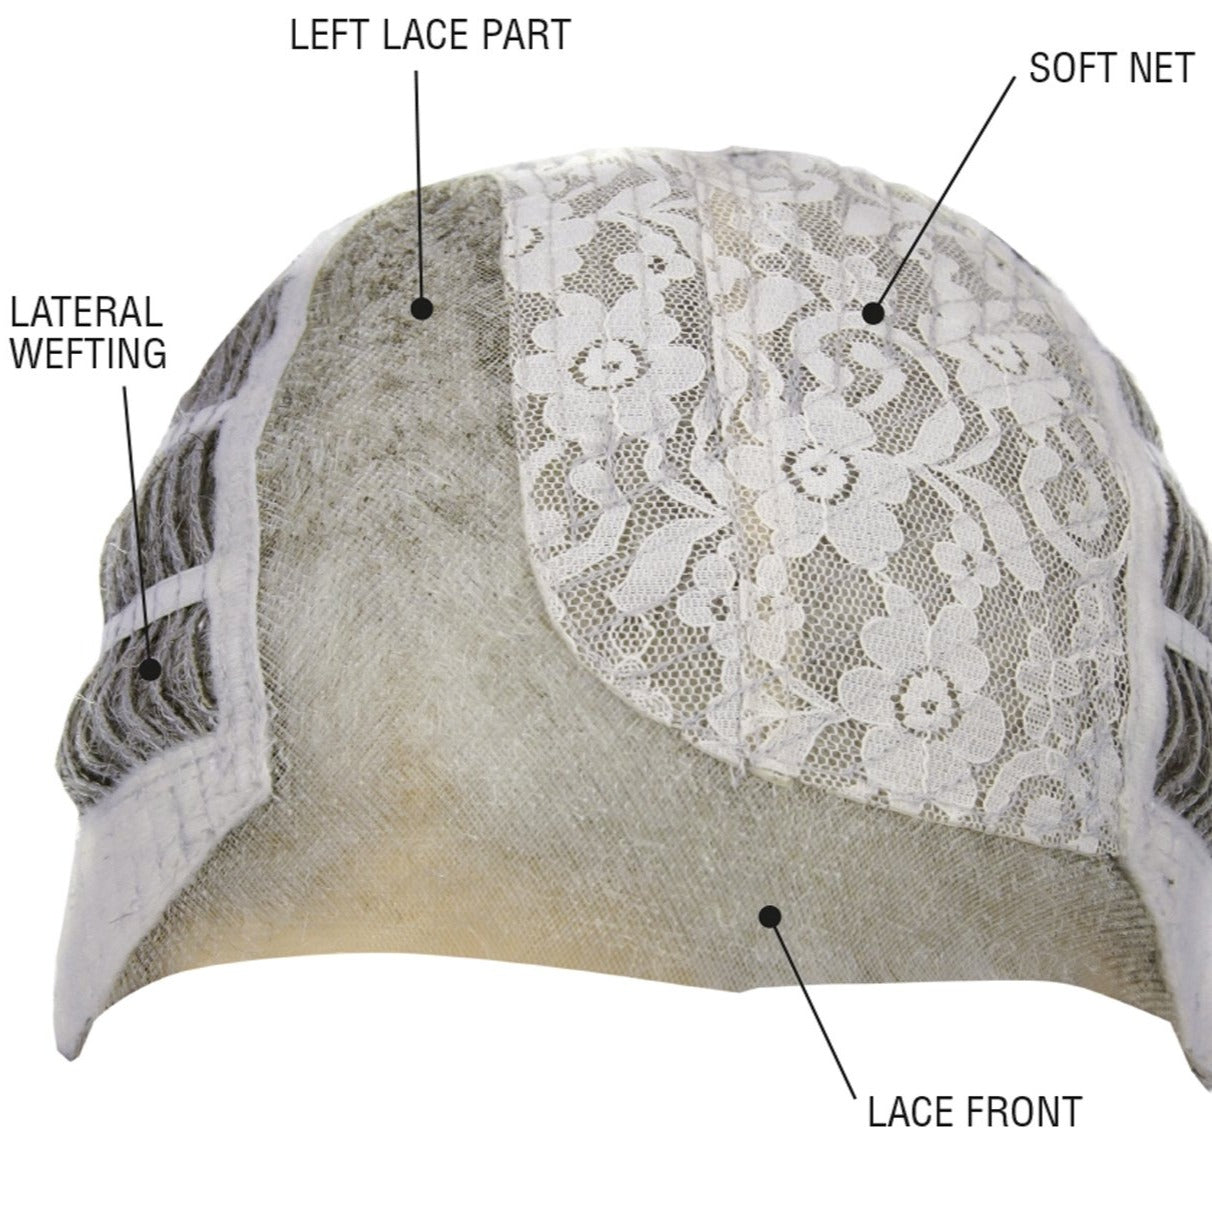 TressAllure Lace Front and Part Cap